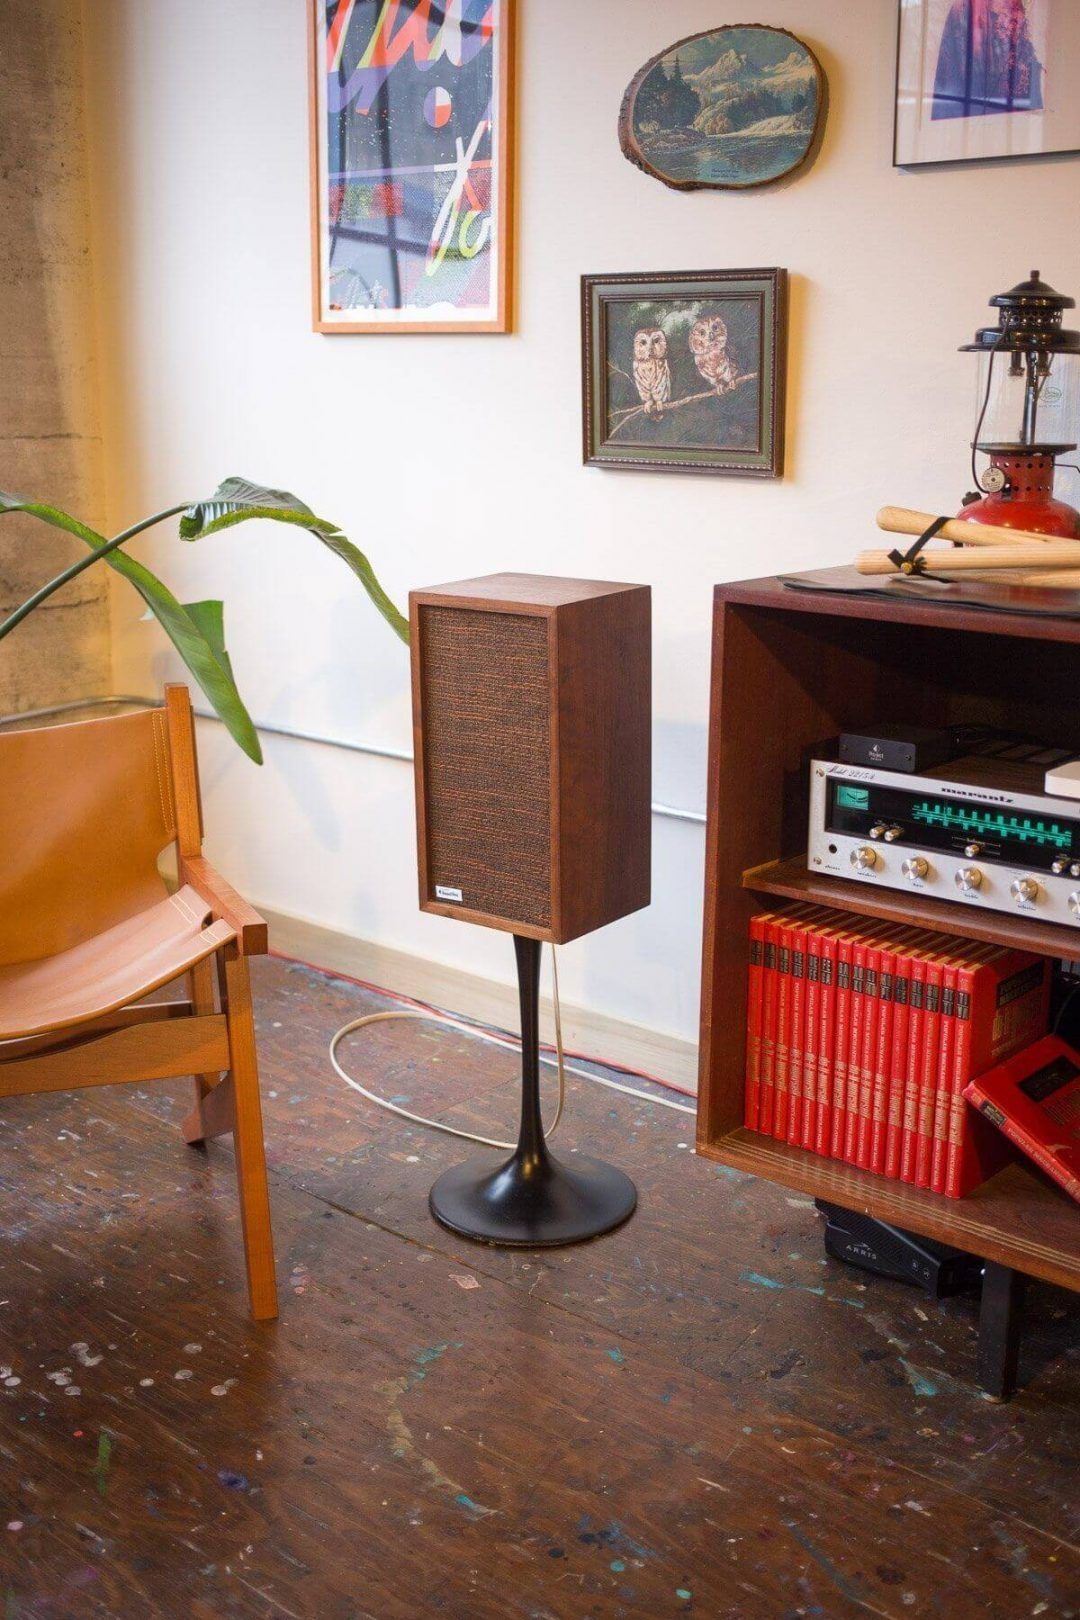 11 Diy Speaker Stand To Get A Perfect Sound Experience - 3F2B5855Cf7Ce1E3887Bc79Ee41E1Cb8